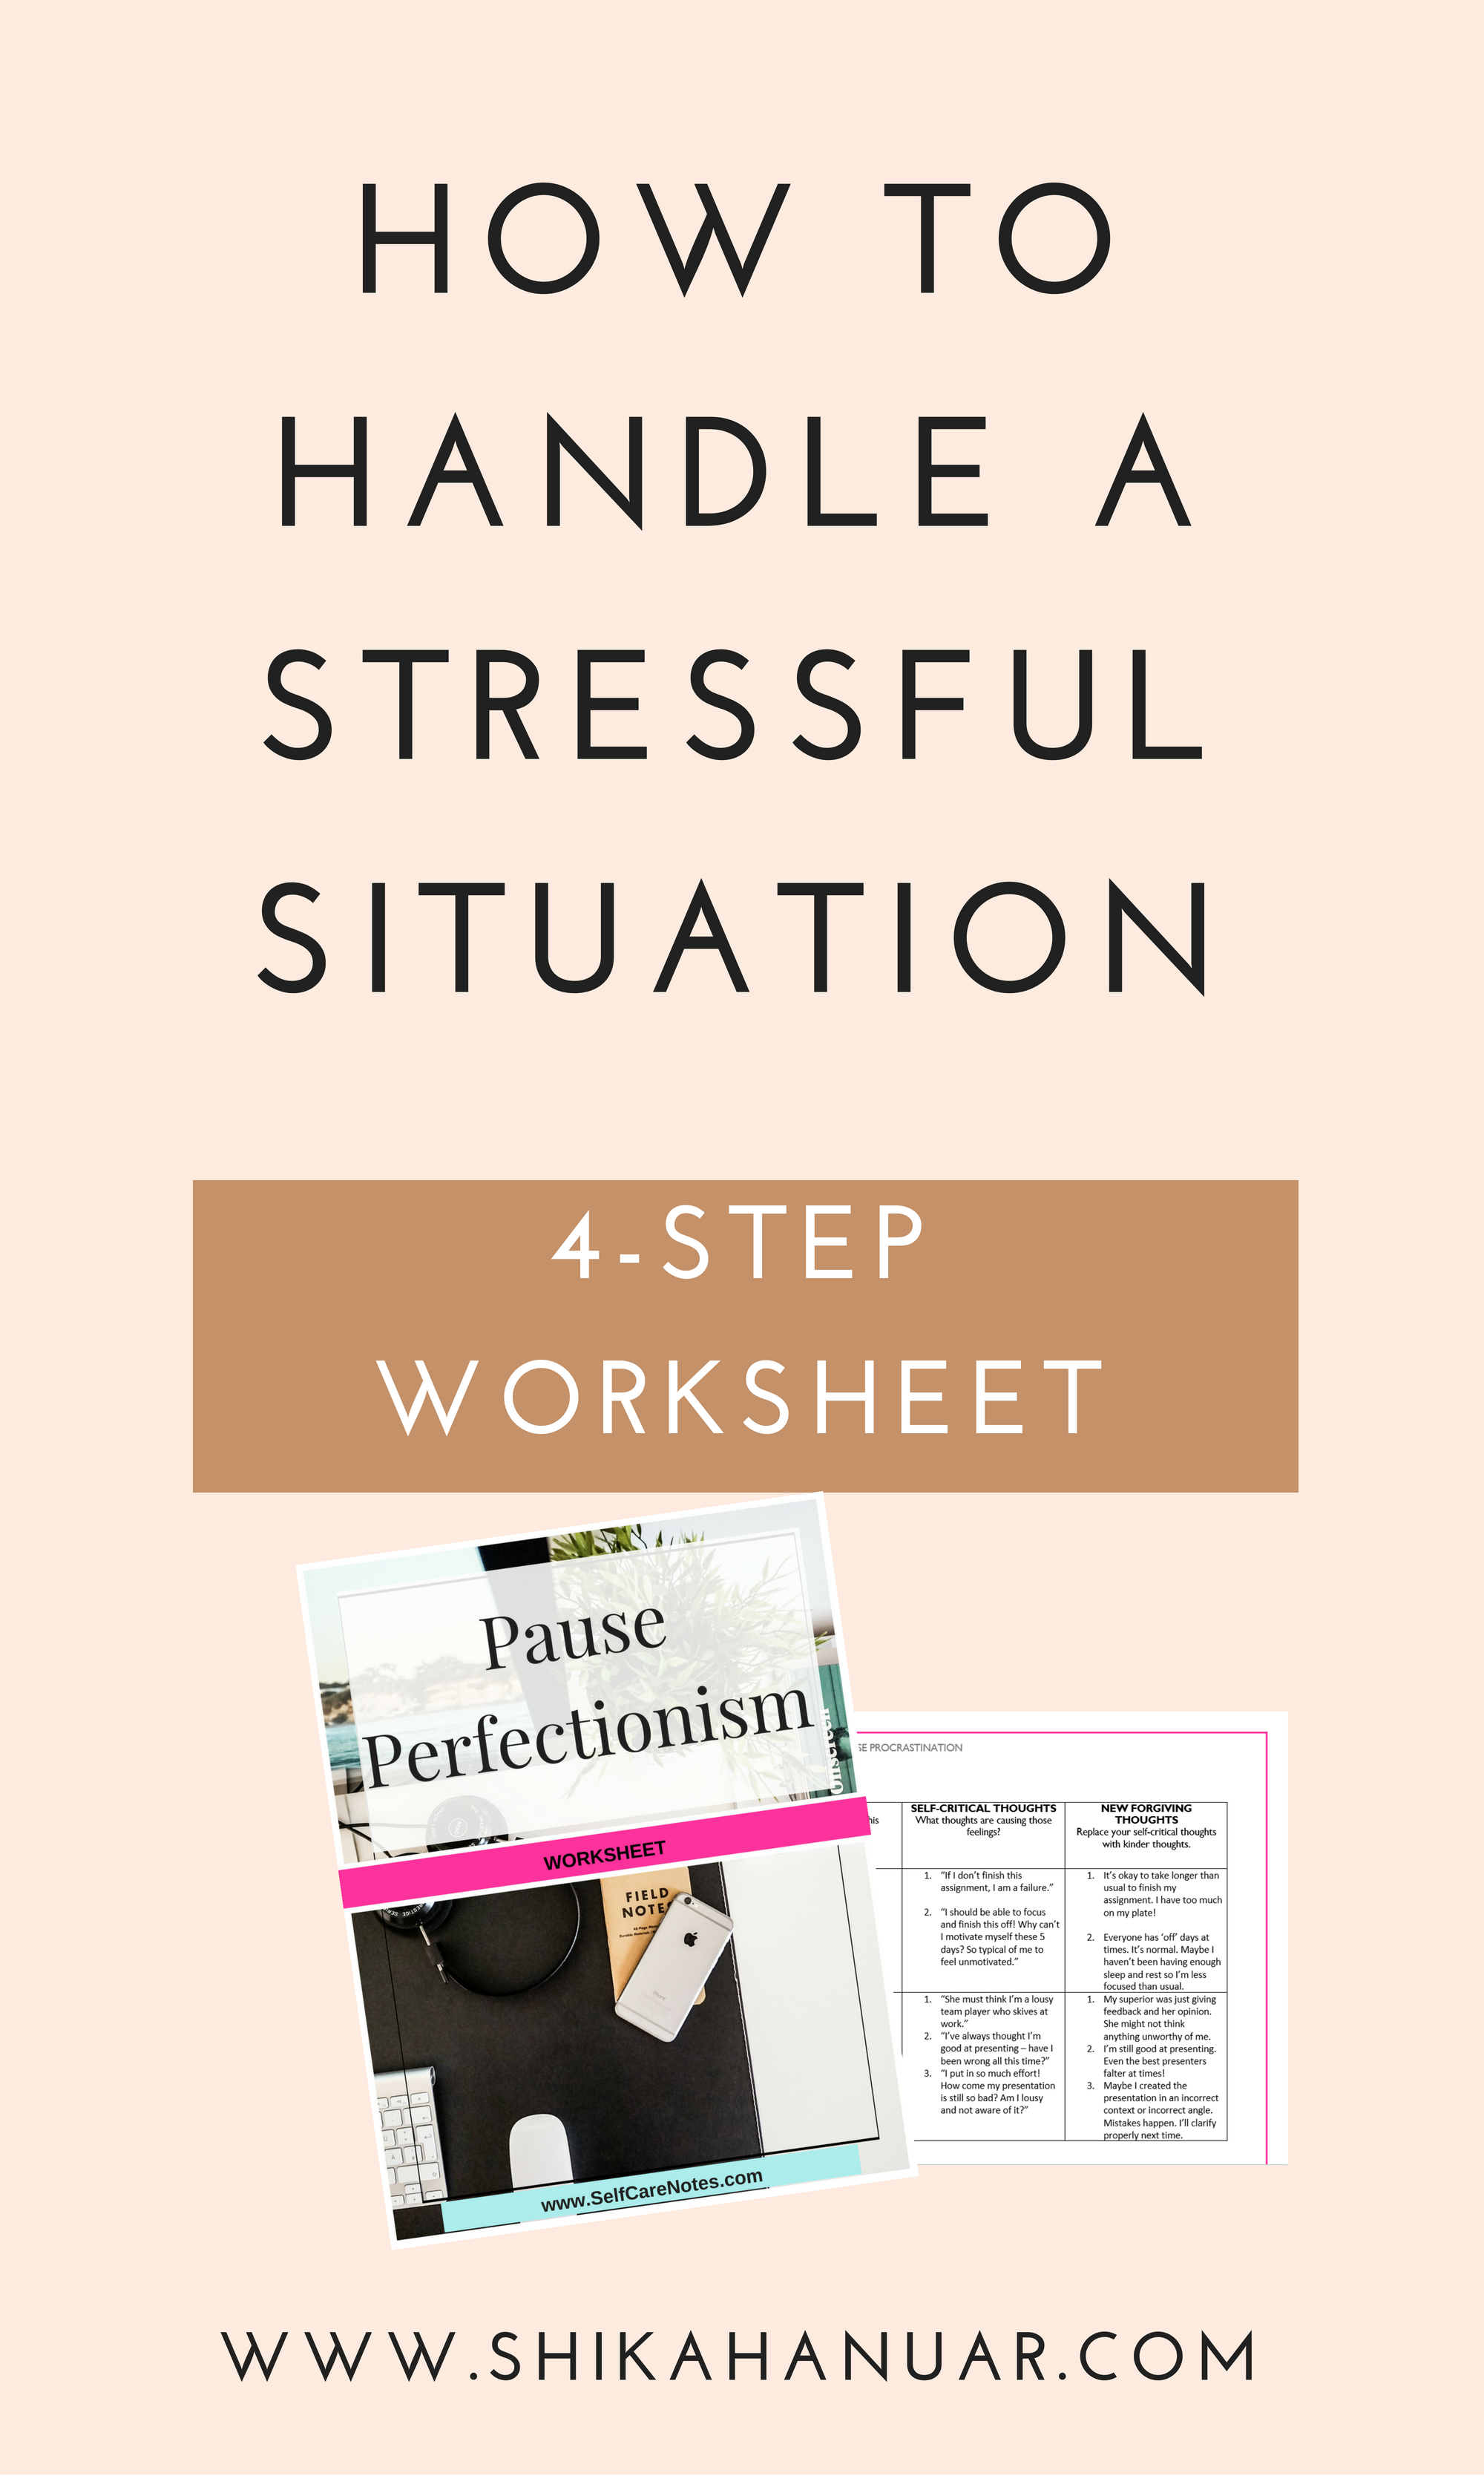 How To Handle A Stressful Situation